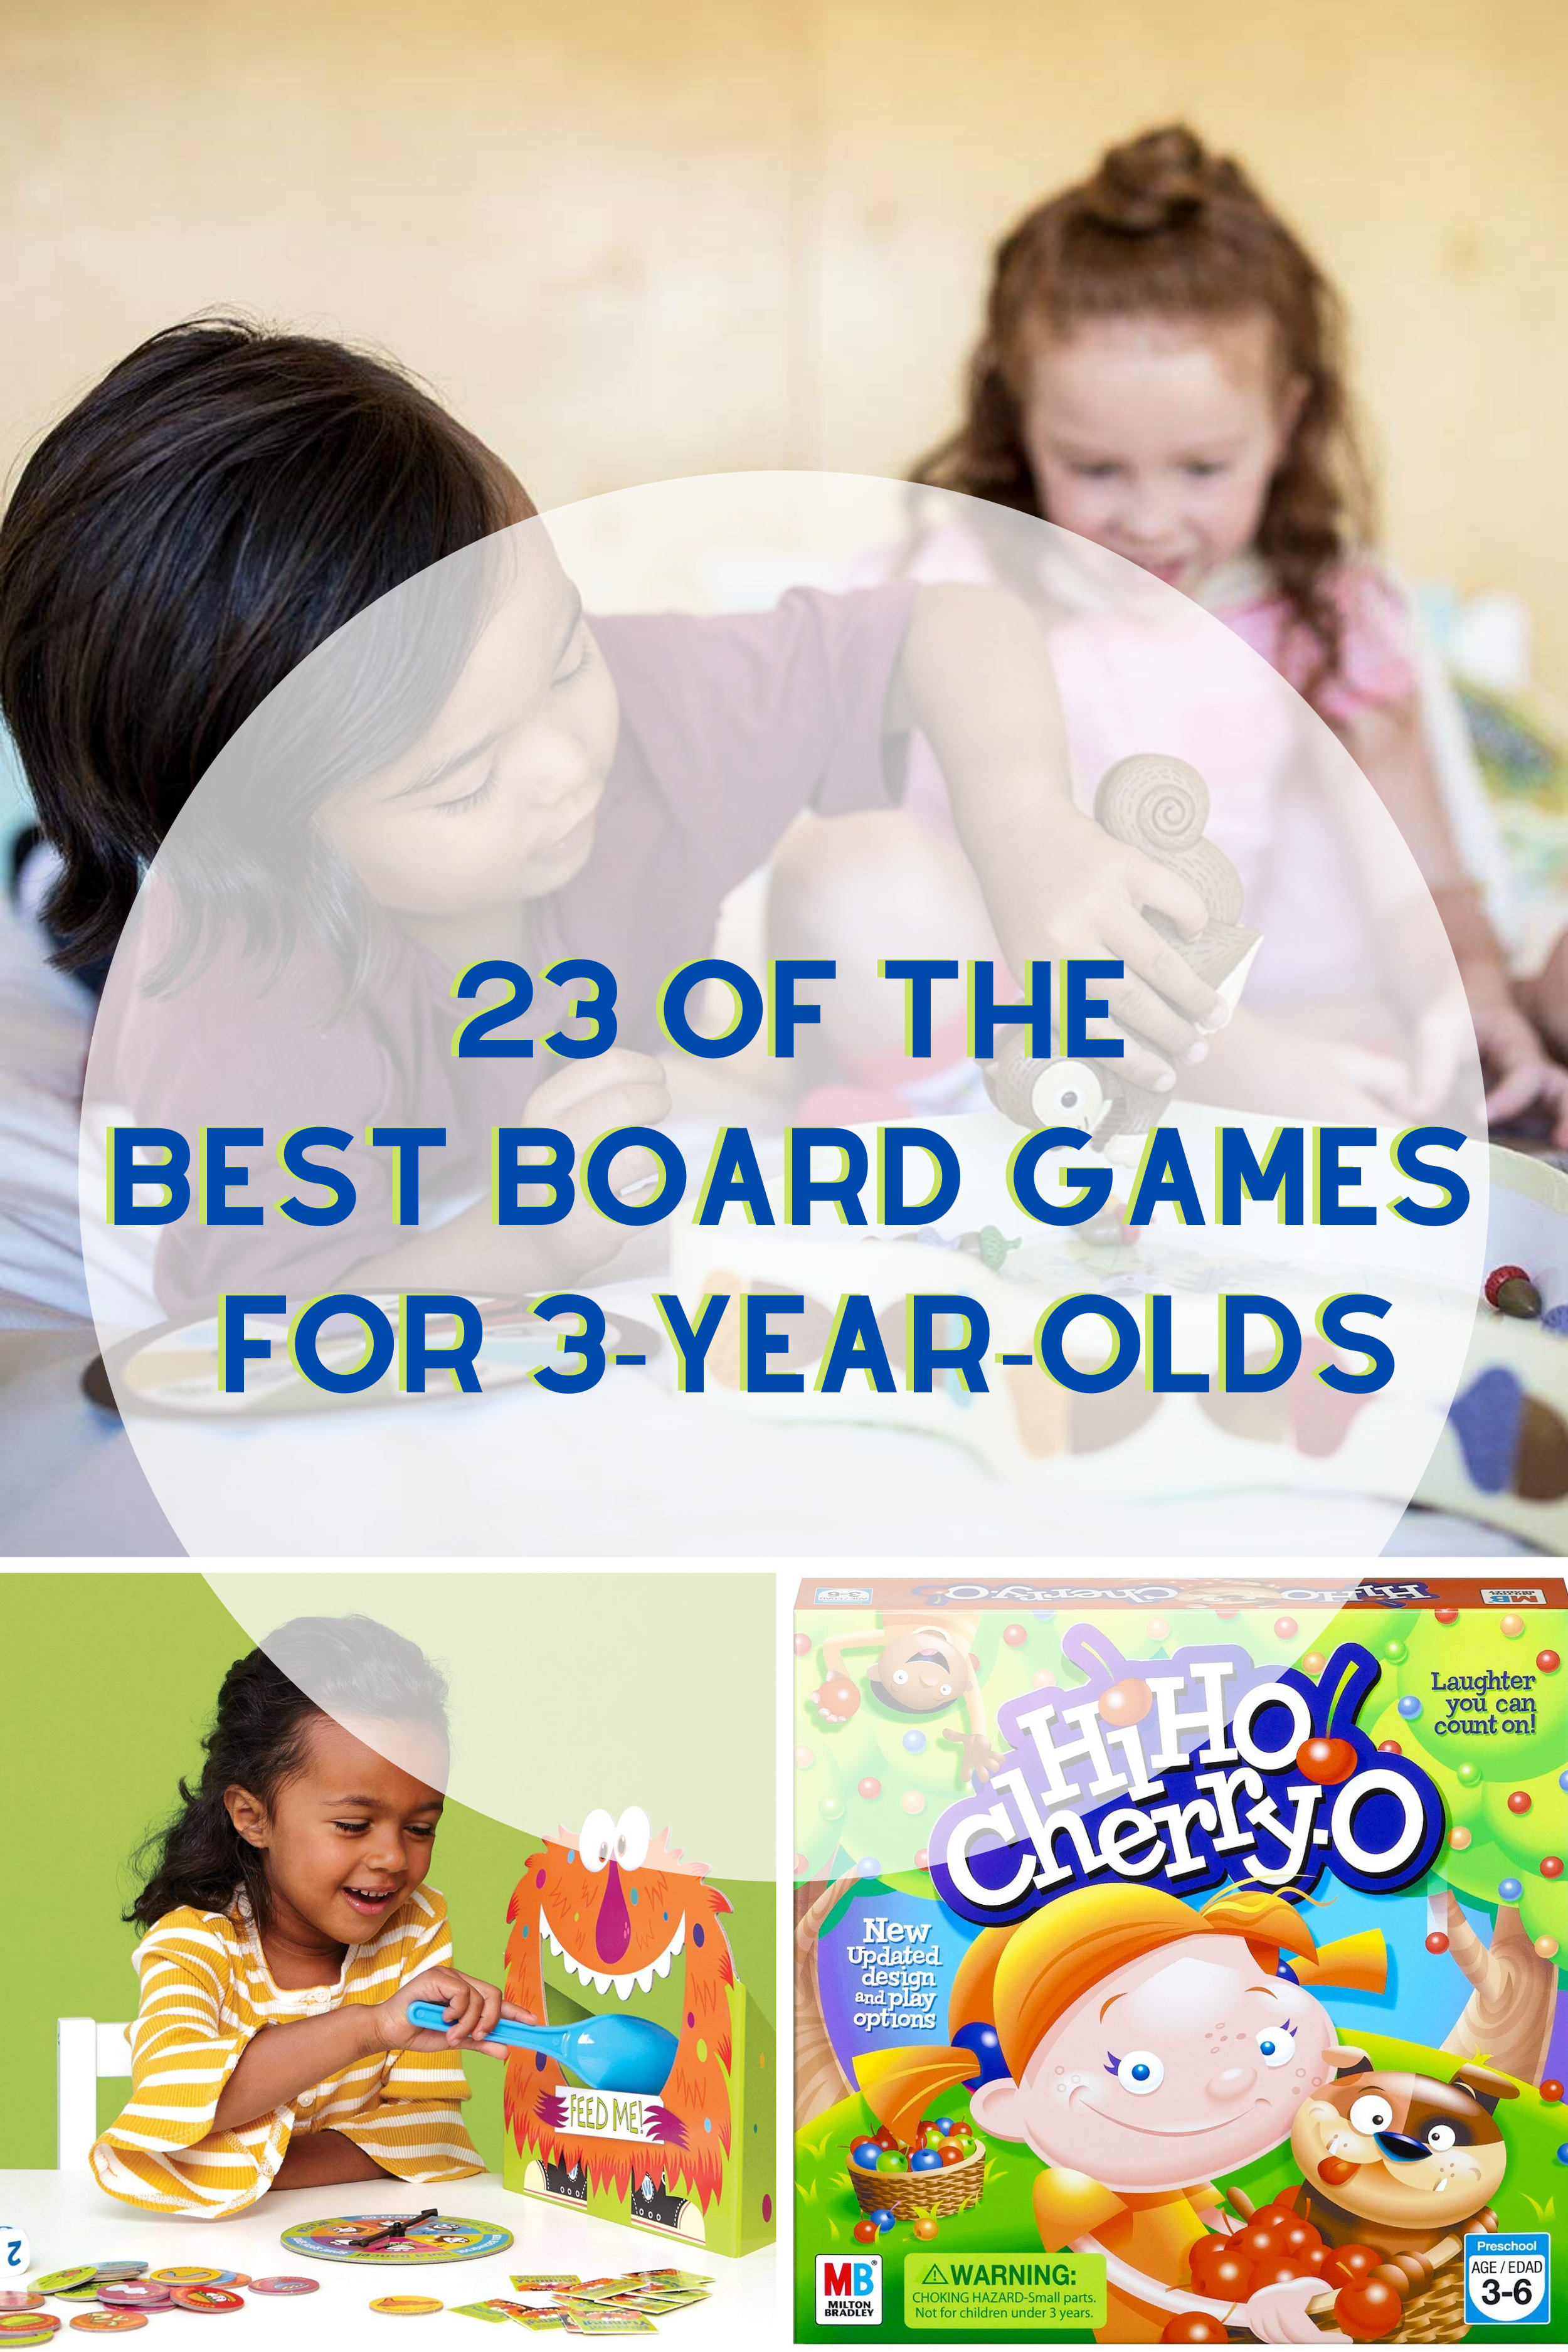 23 of the Best Board Games for 3 Year Olds